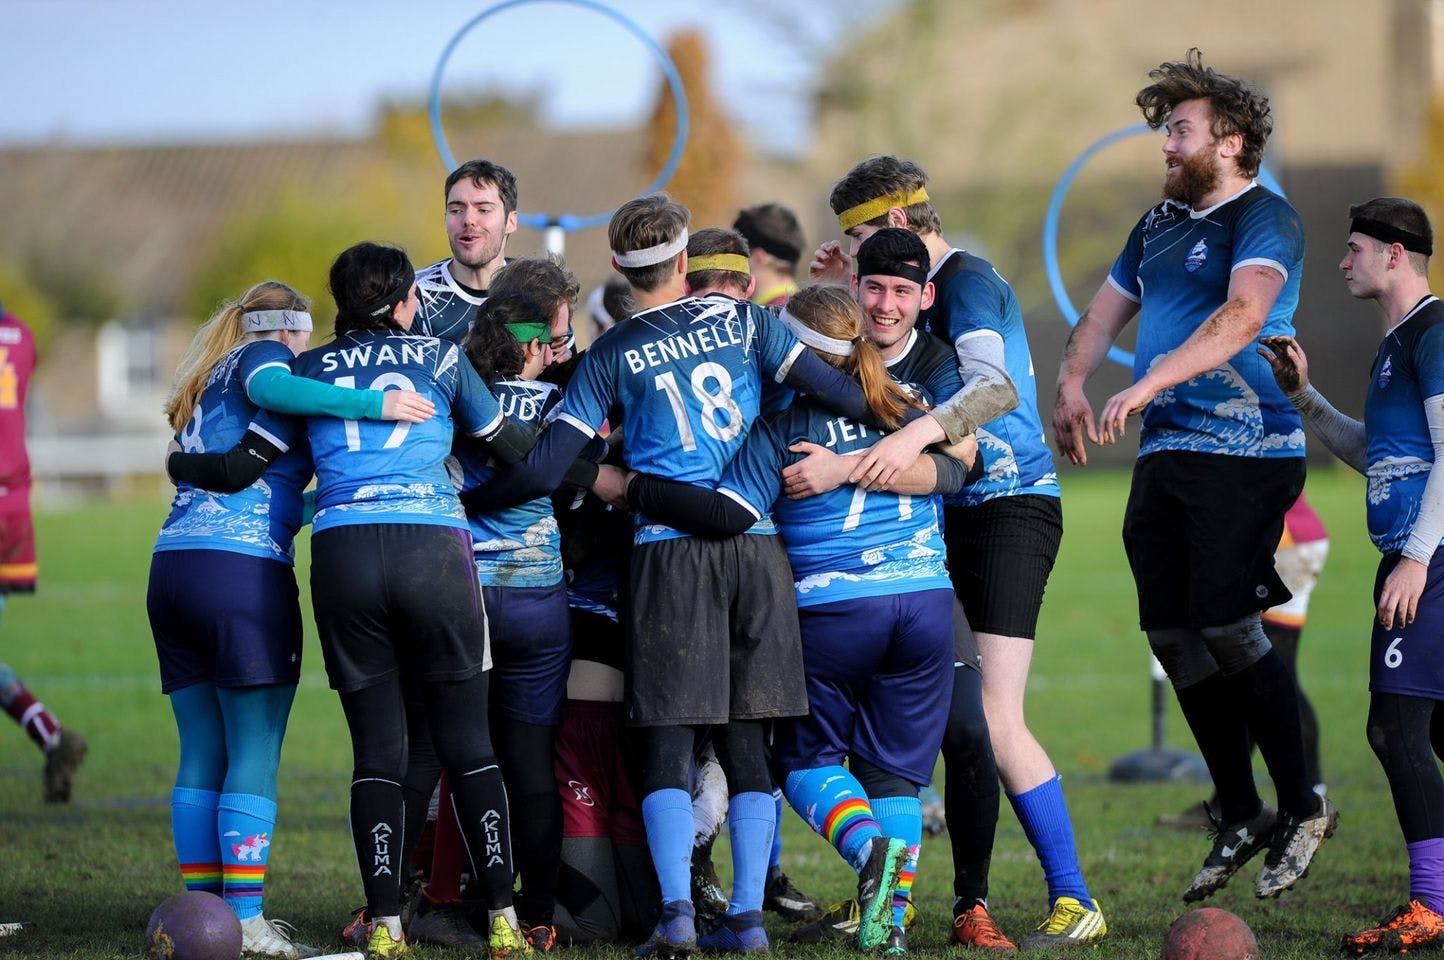 Southsea Quidditch celebrate in a group hug after winning a match